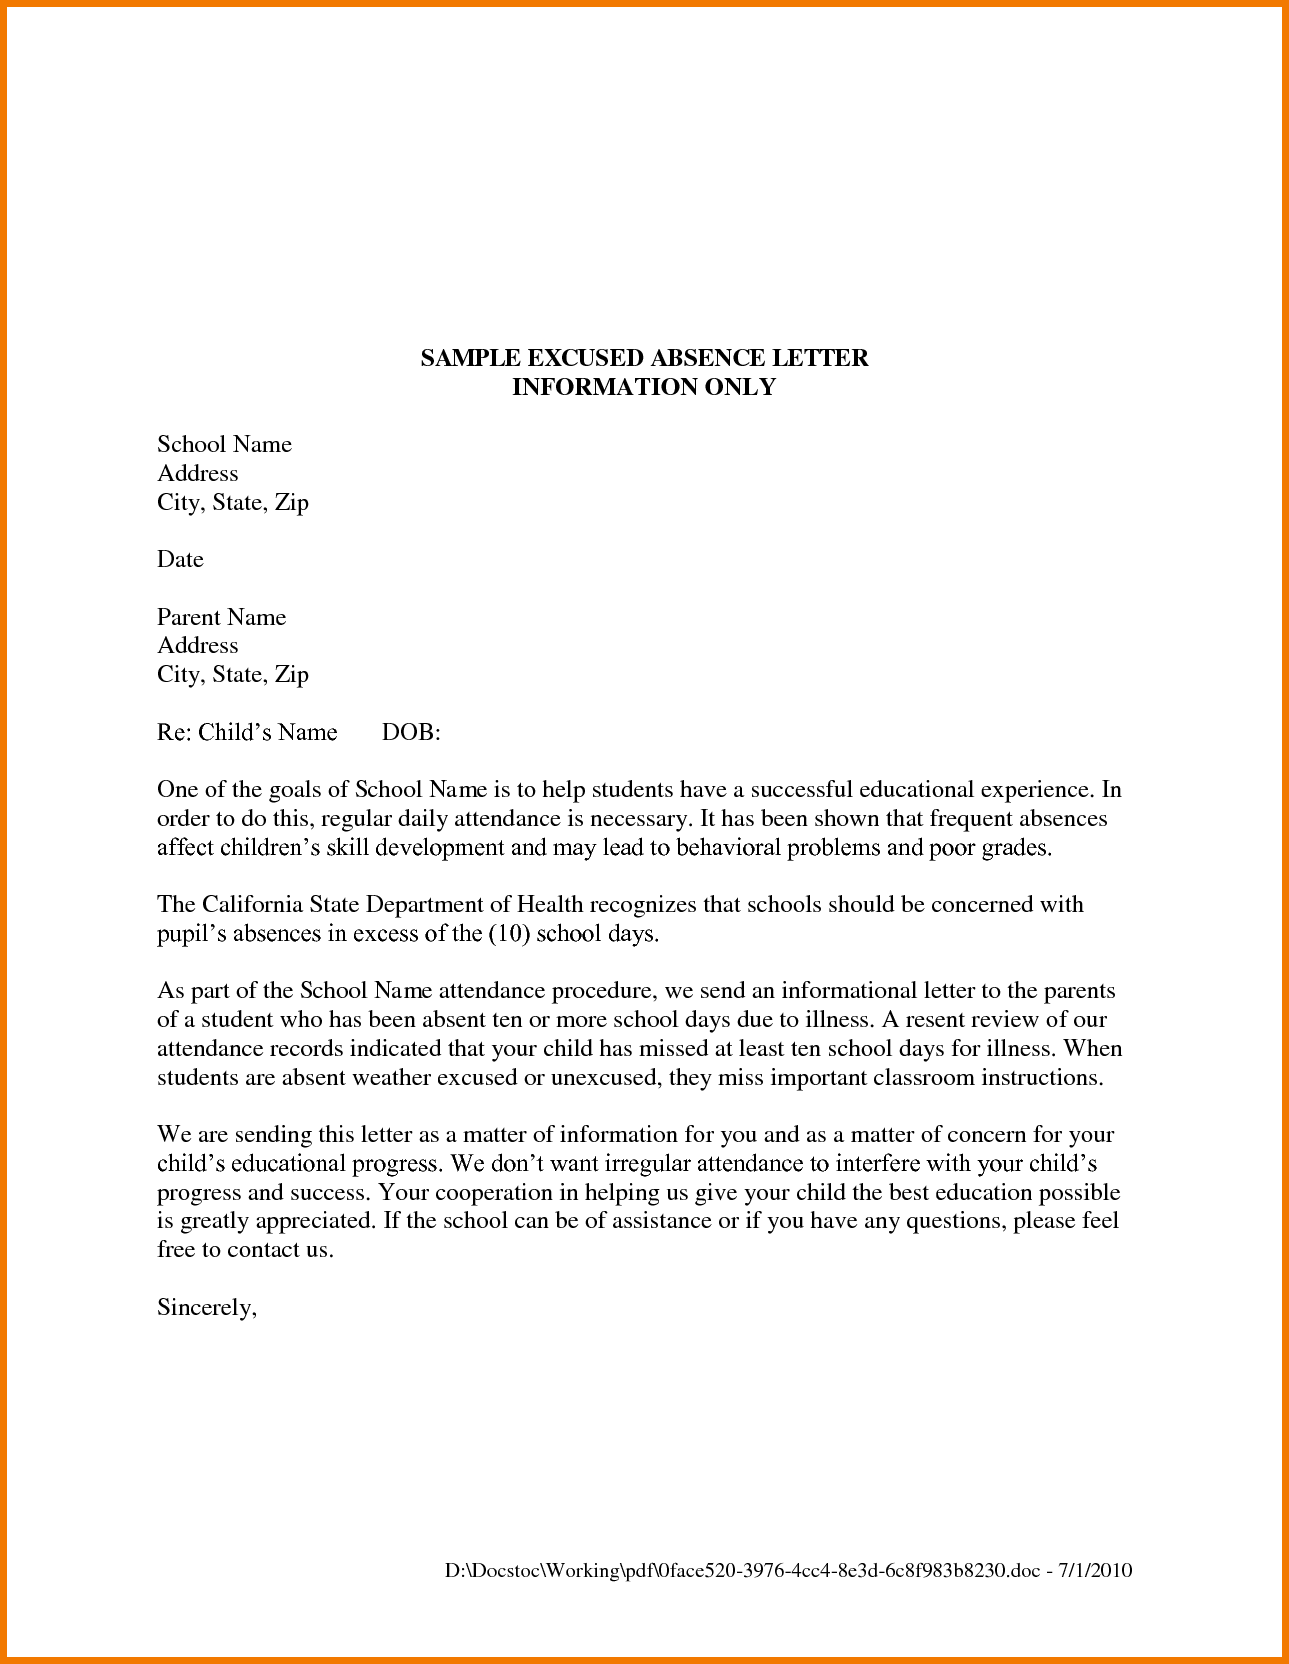 Application sample for leave absence college letter format home application sample for leave absence college letter format thecheapjerseys Gallery